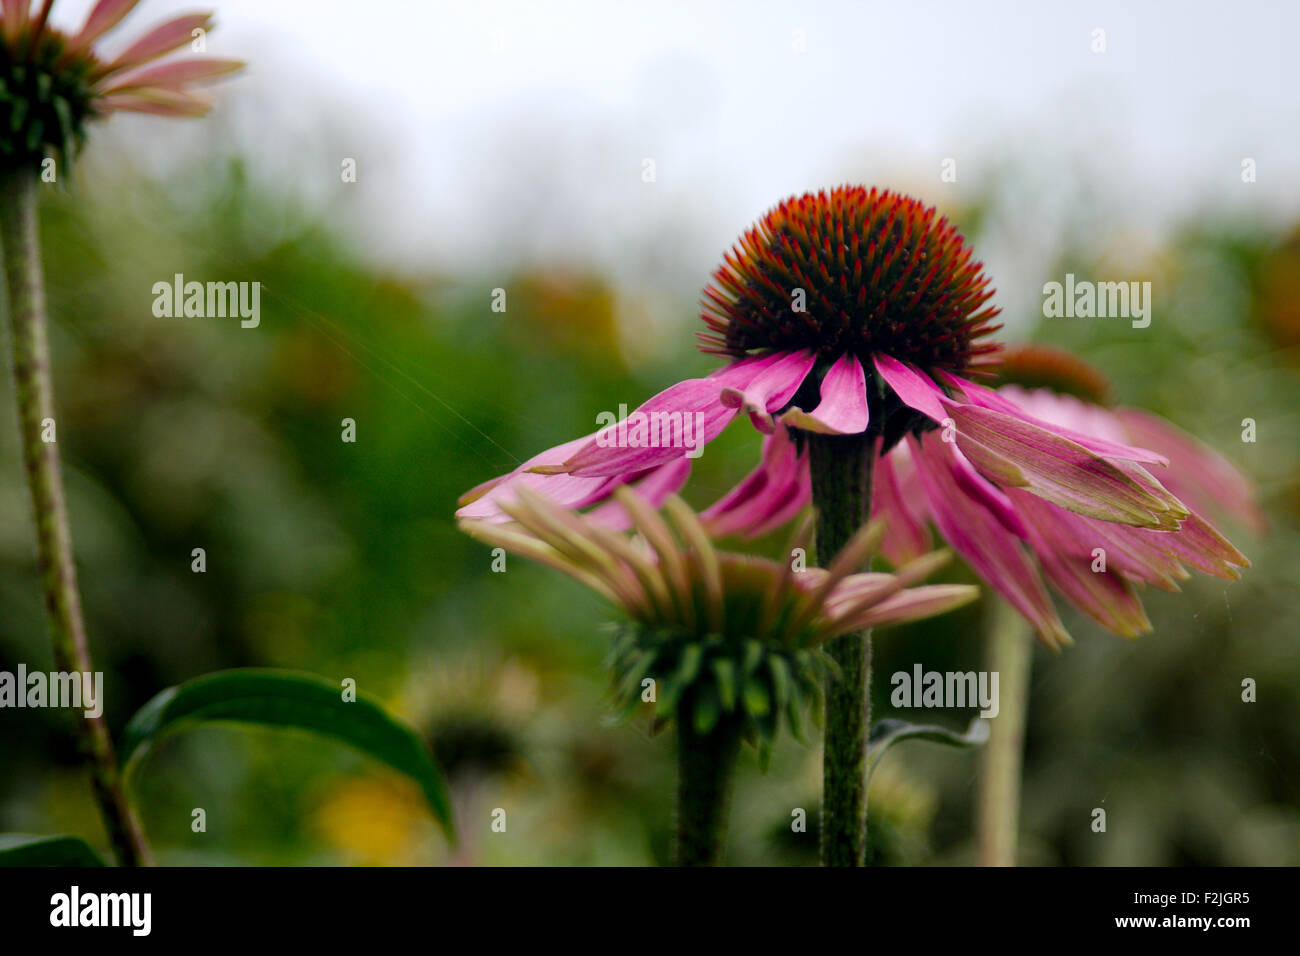 Close-up of a pale purple coneflower, Echinacea pallida, close-up against a blurred background - Stock Image